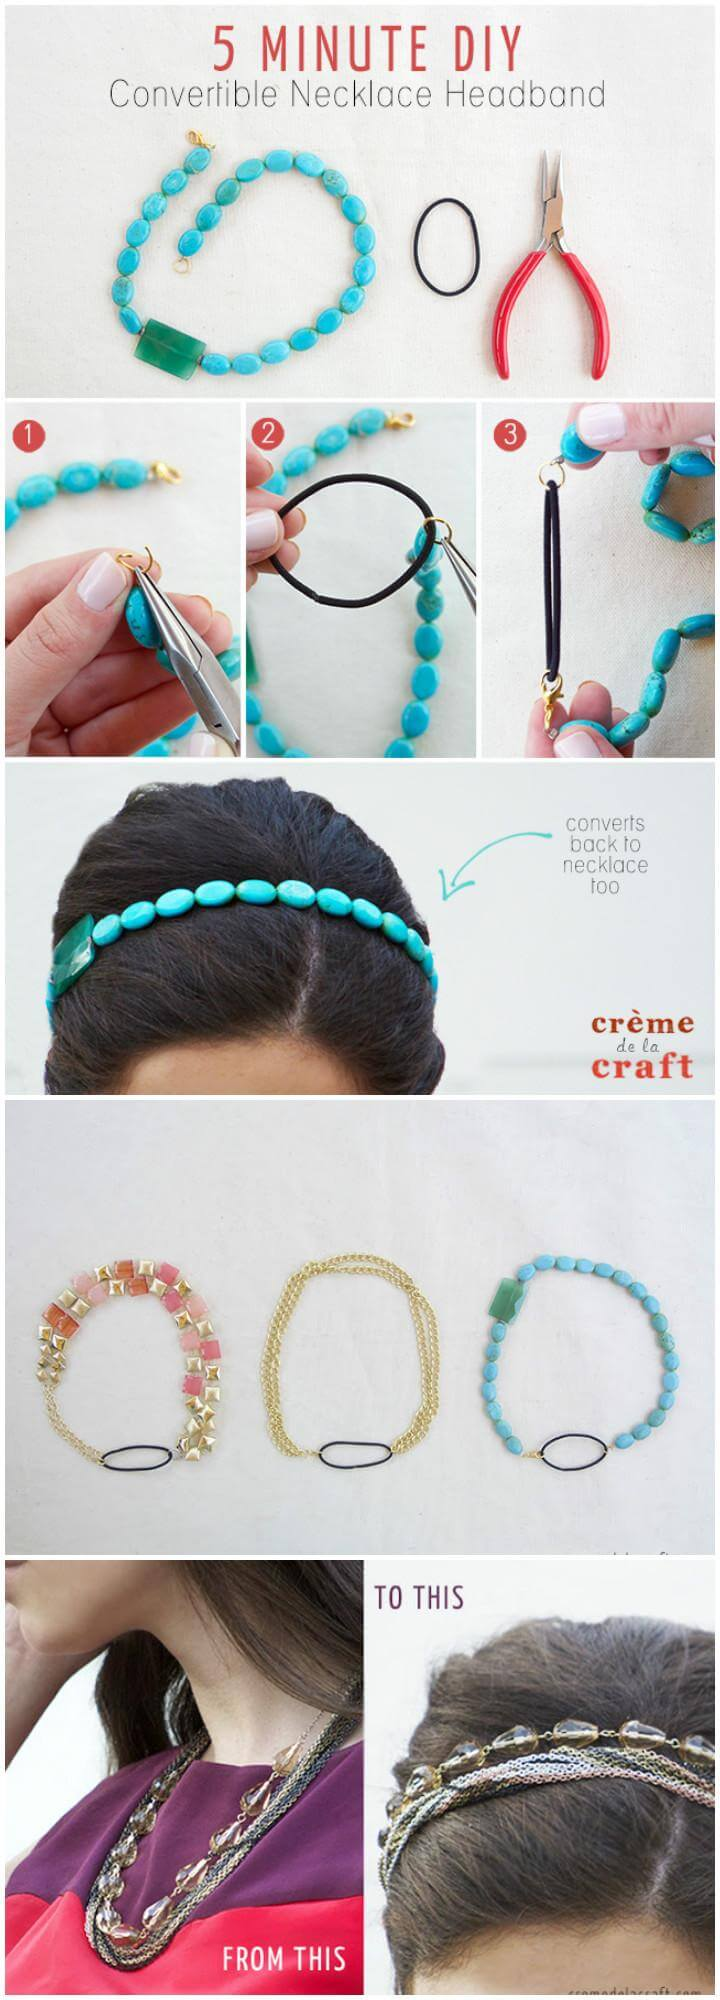 DIY Homemade 5 Minute Convertible Necklace Headband